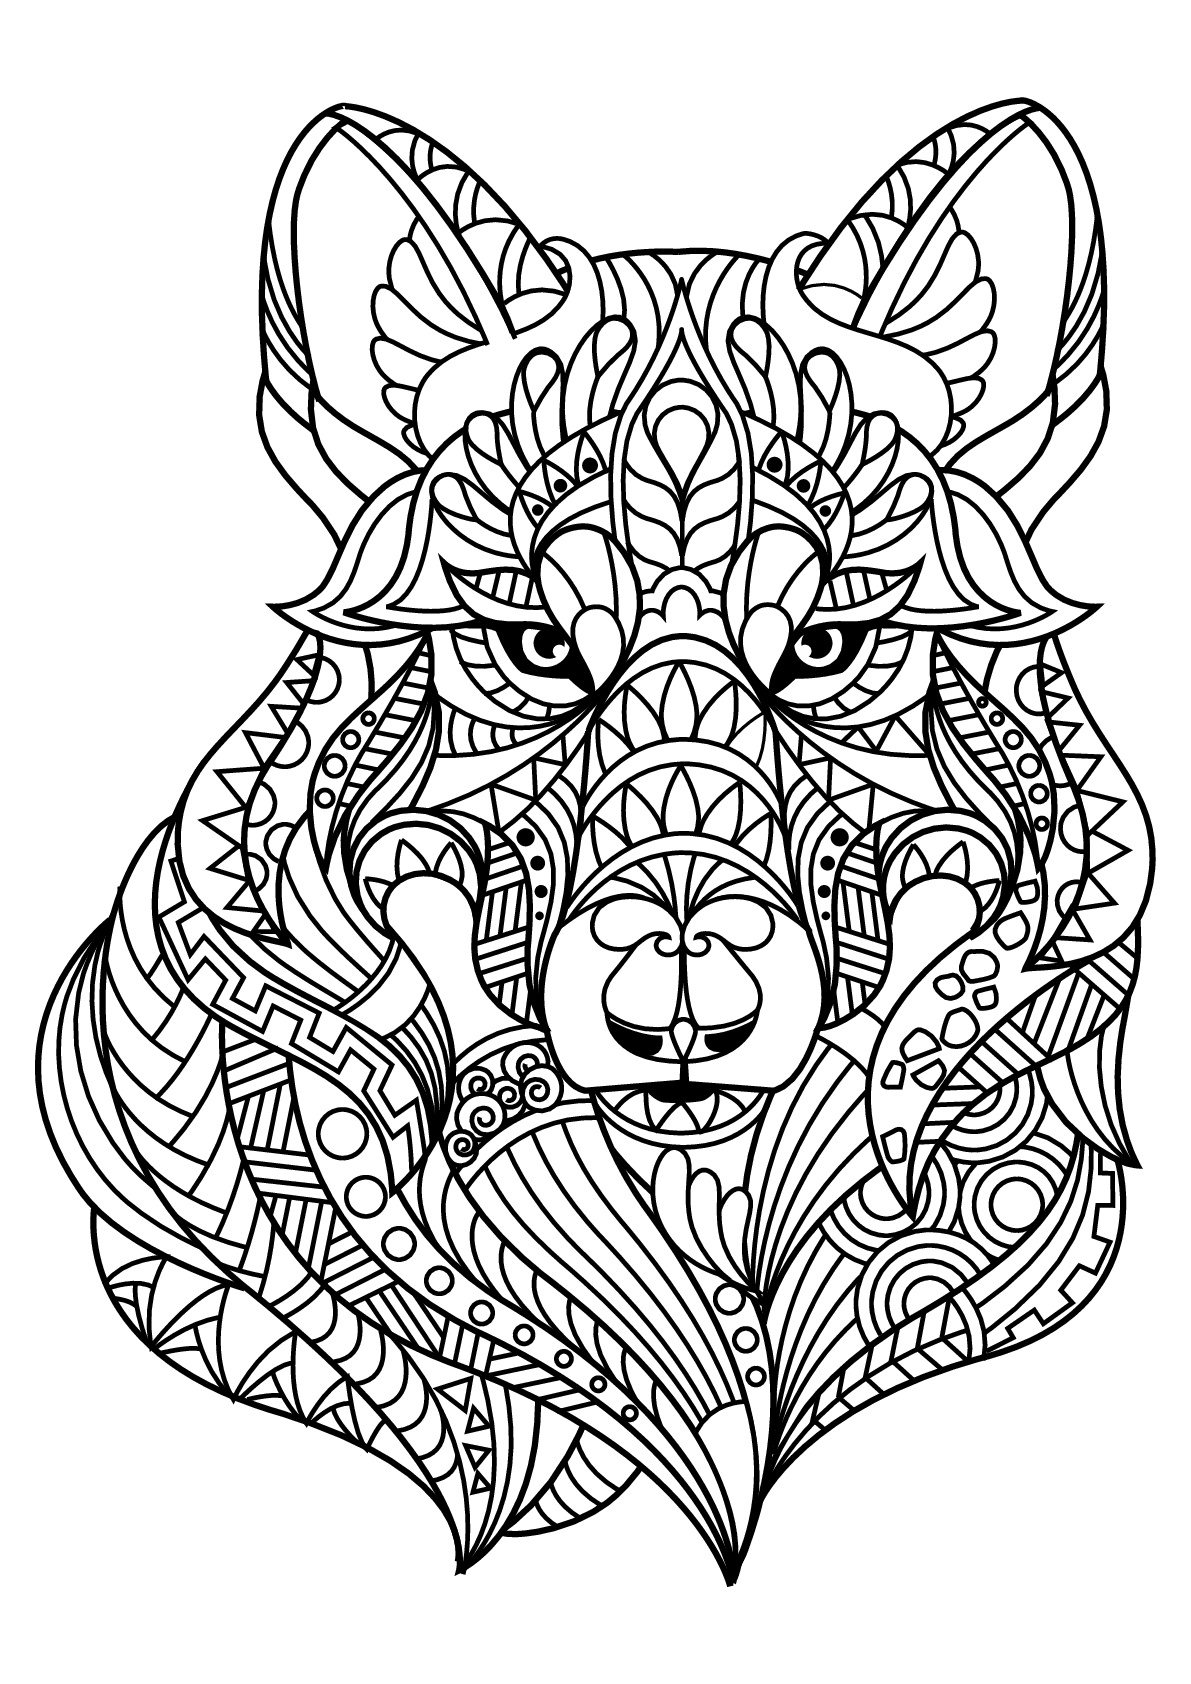 wolf pictures to color and print free wolf coloring pages for adults printable to download pictures and print color wolf to